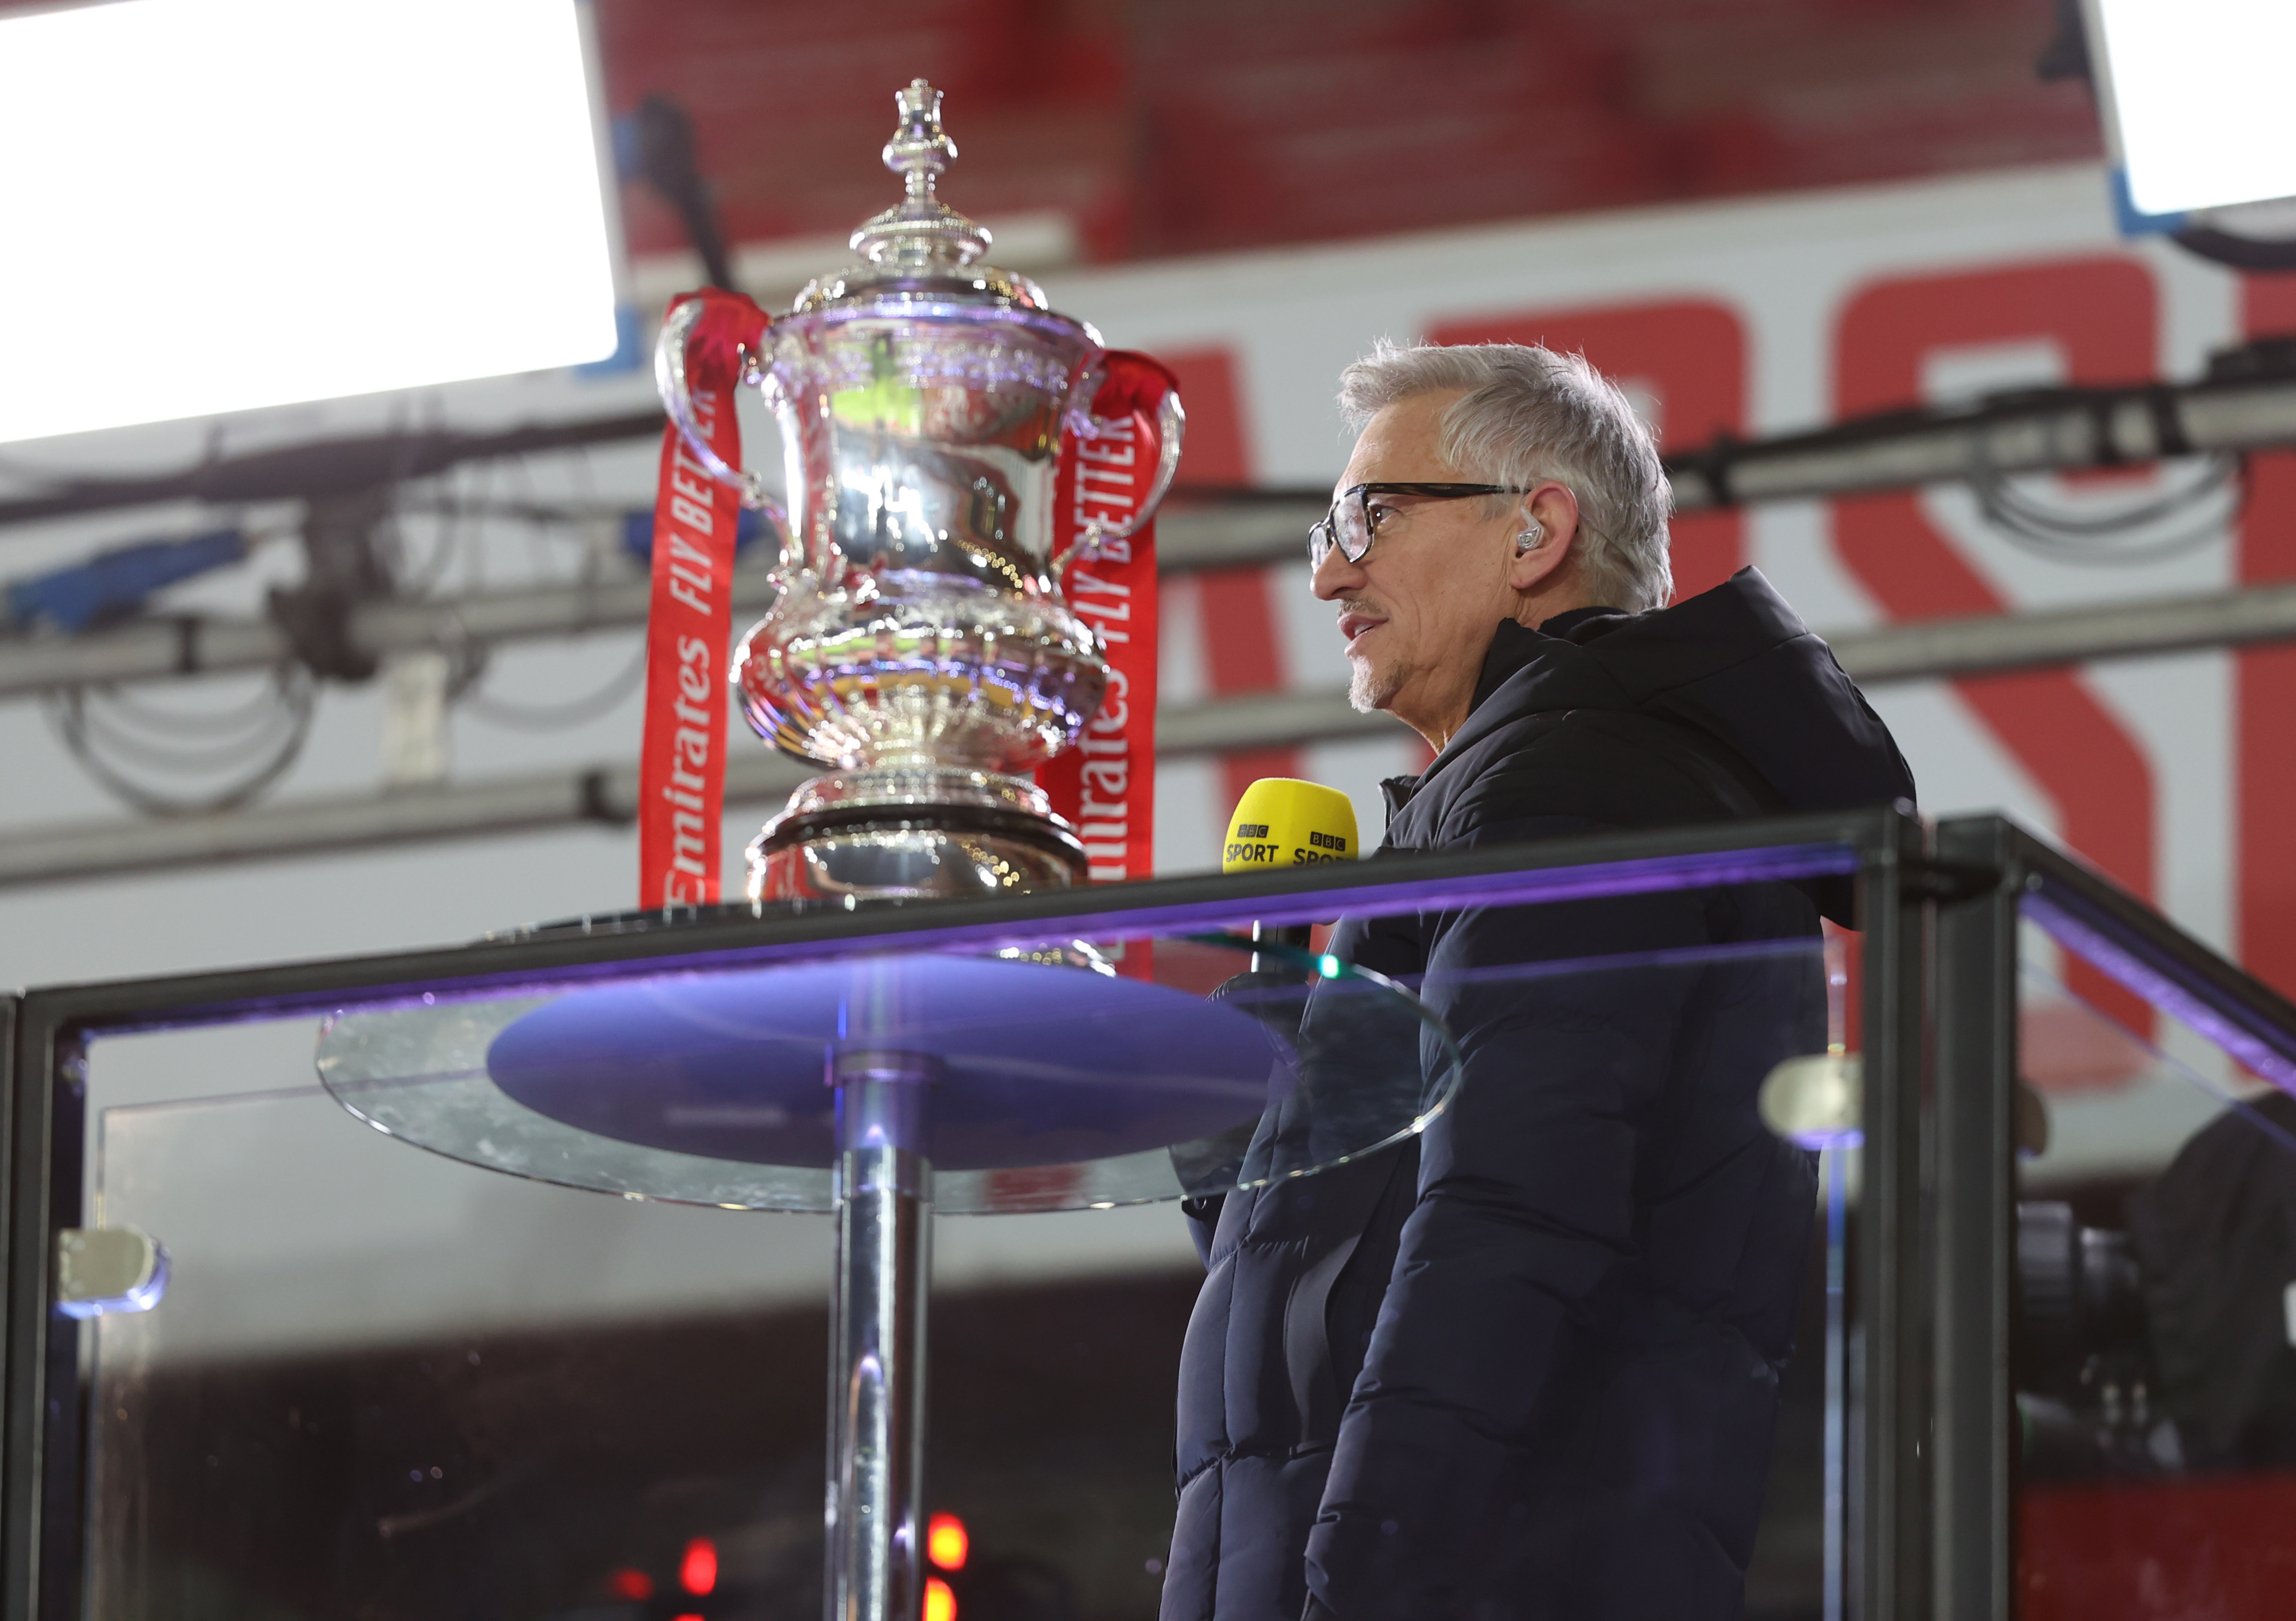 Gary Lineker standing at the FA Cup trophy